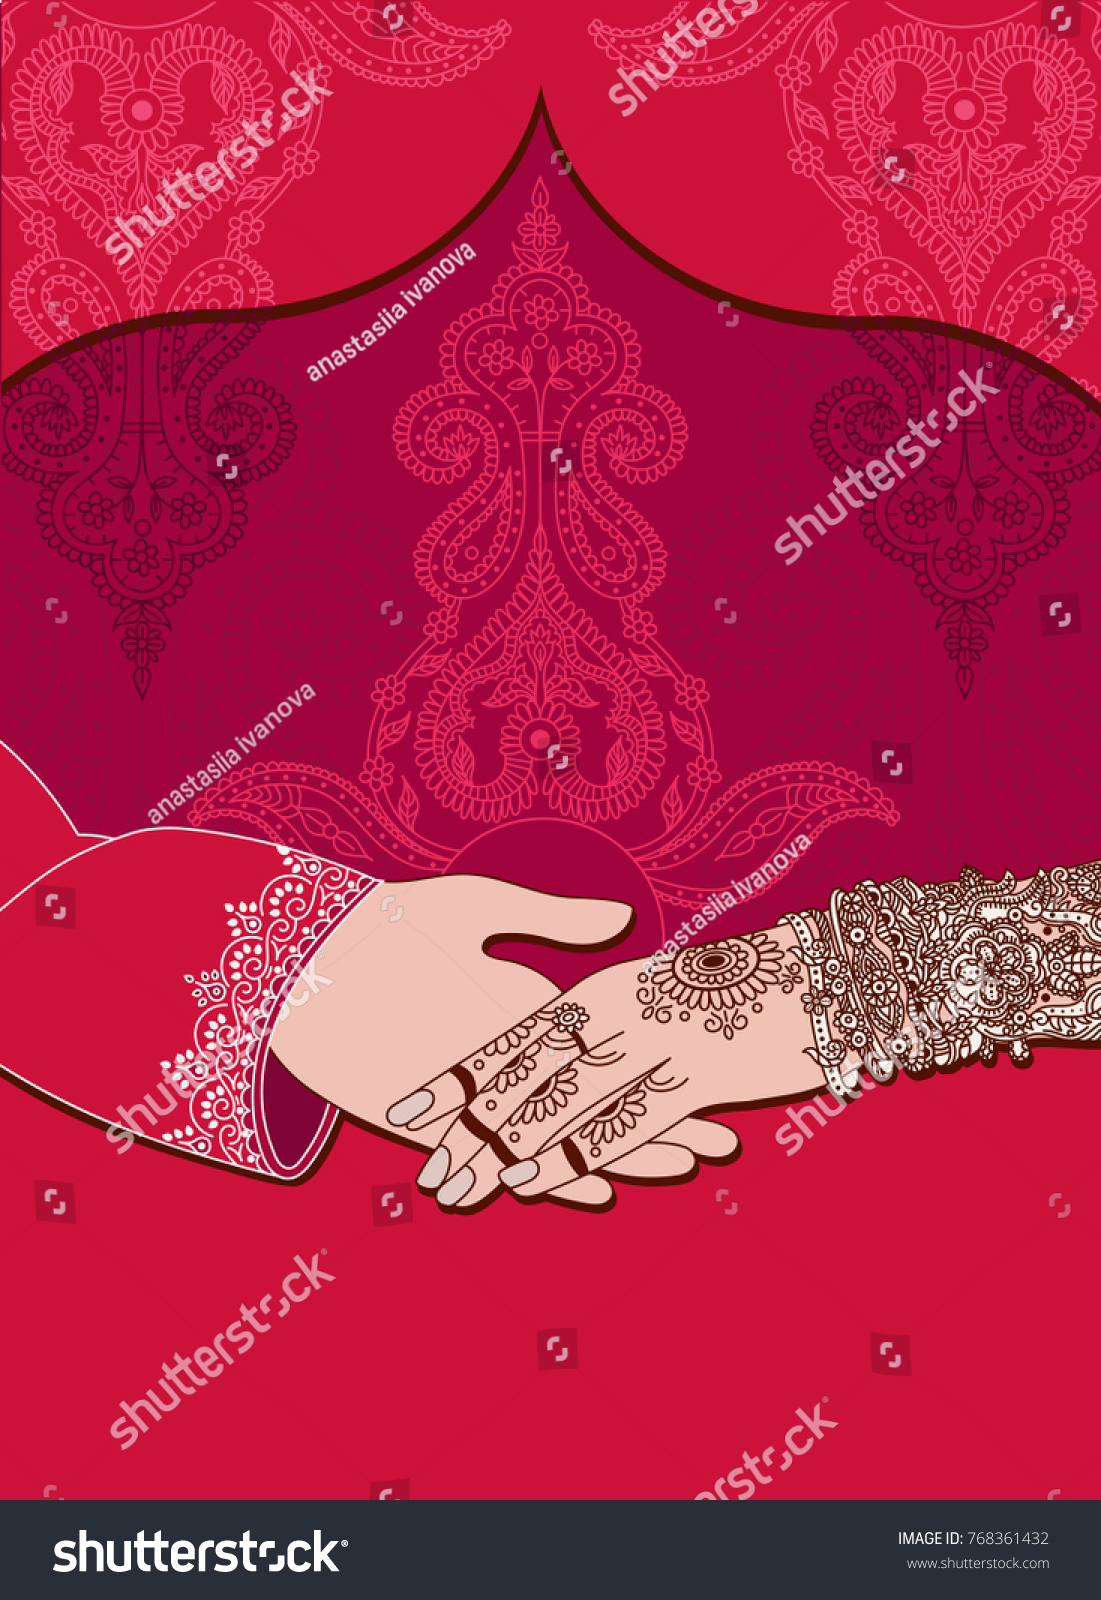 Wedding Indian Invitation Card On Red Image Vectorielle De Stock